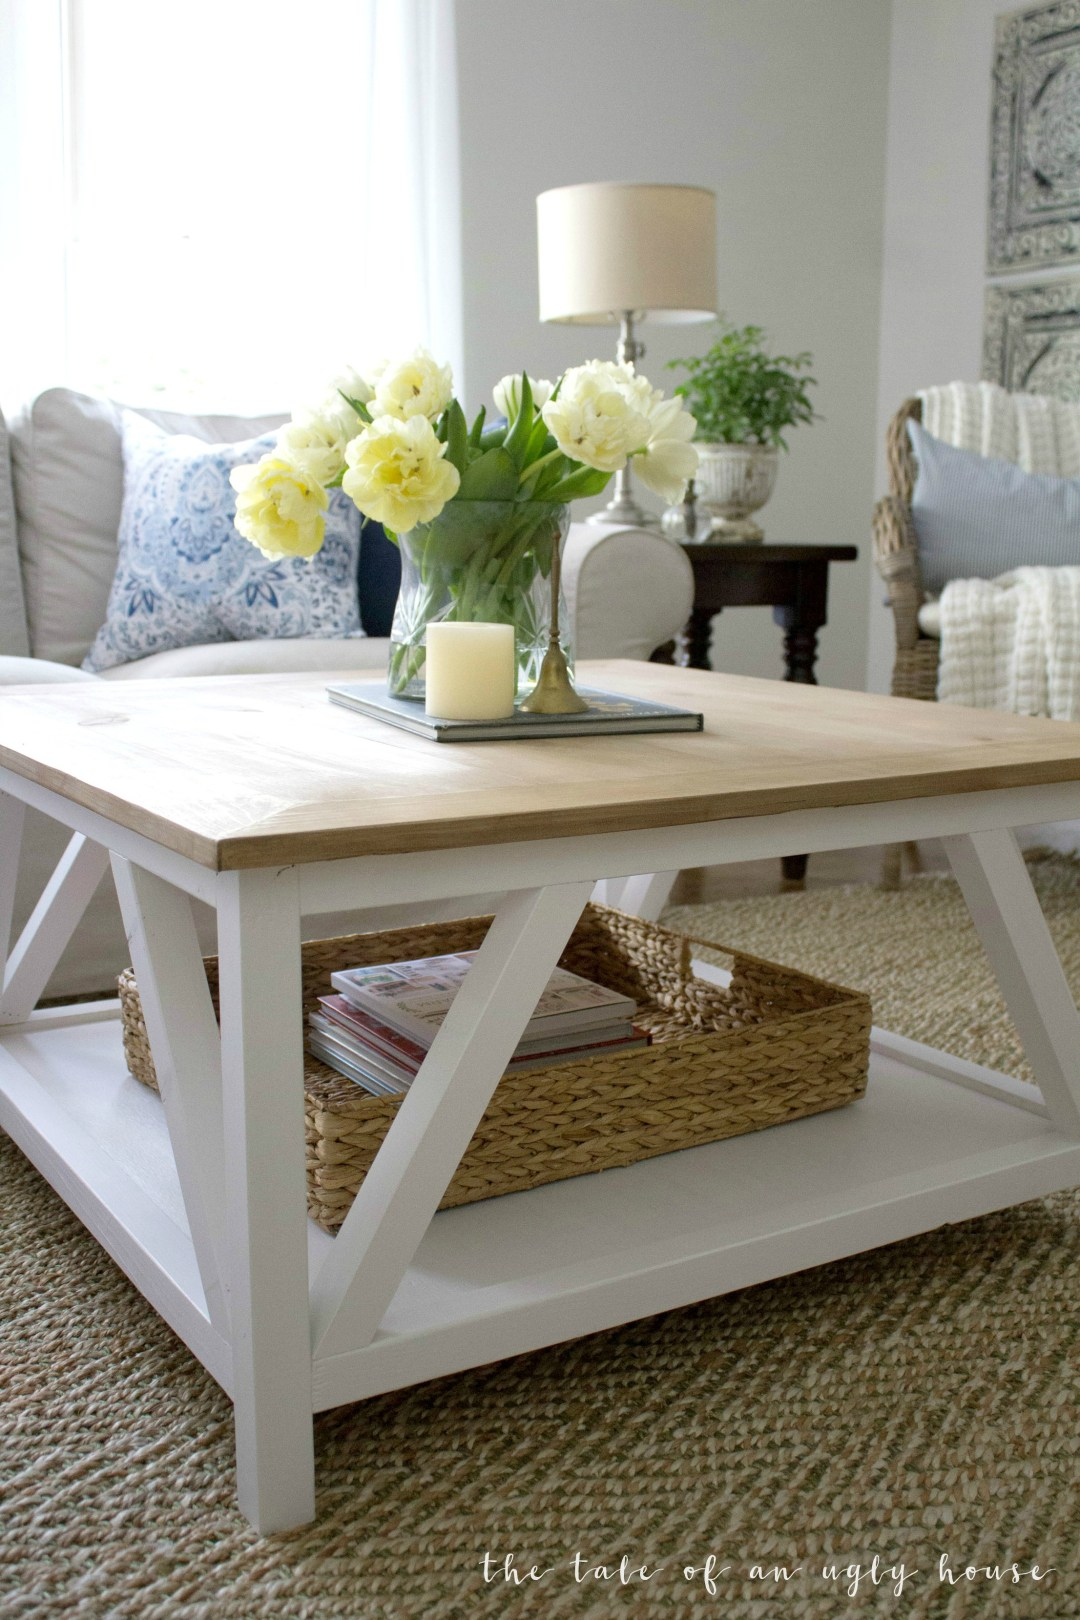 Diy Modern Farmhouse Coffee Table Sincerely Marie Designs